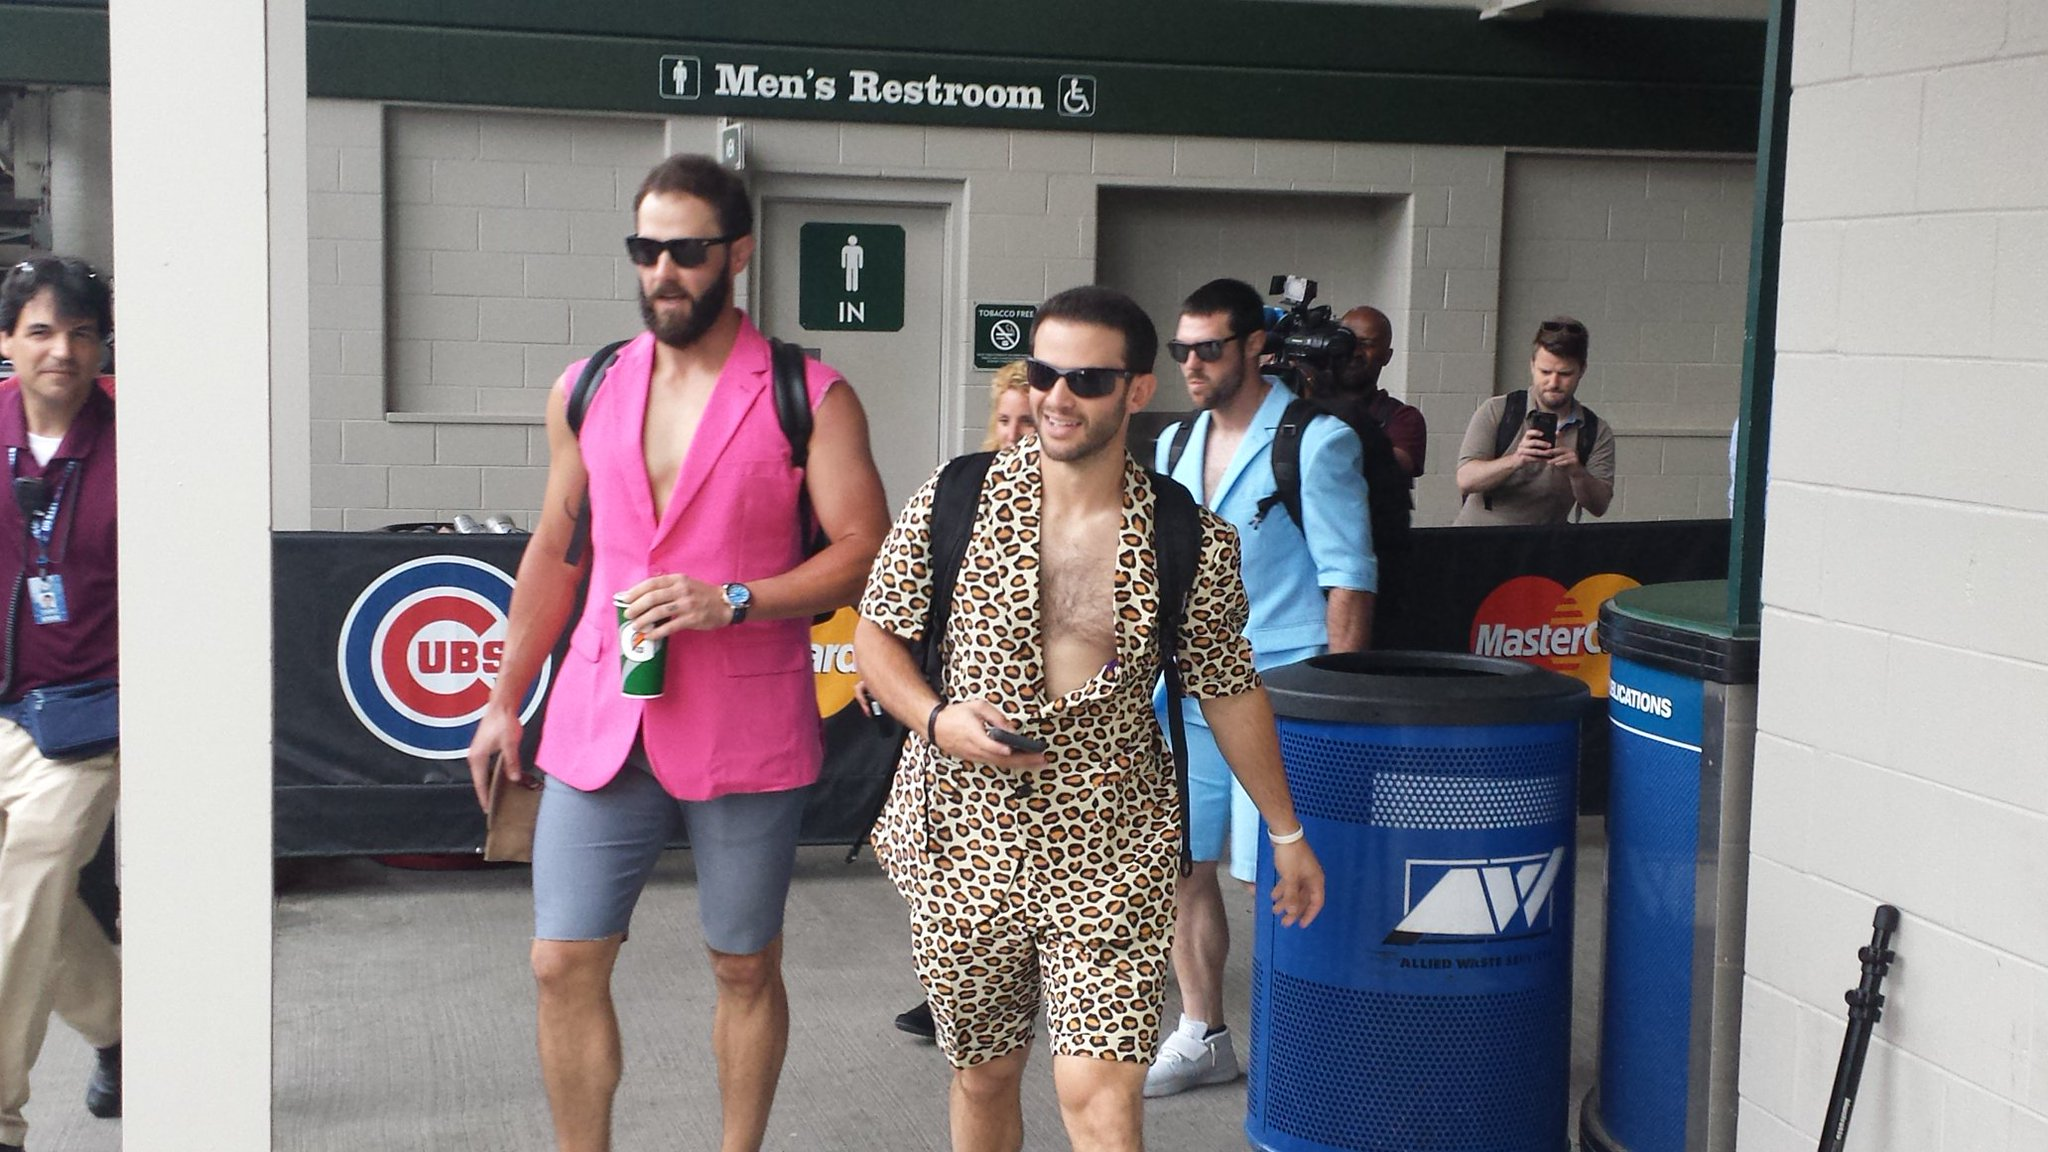 Joe Maddon Has The Cubs Wear Leisure Outfits For Miami Road Trip